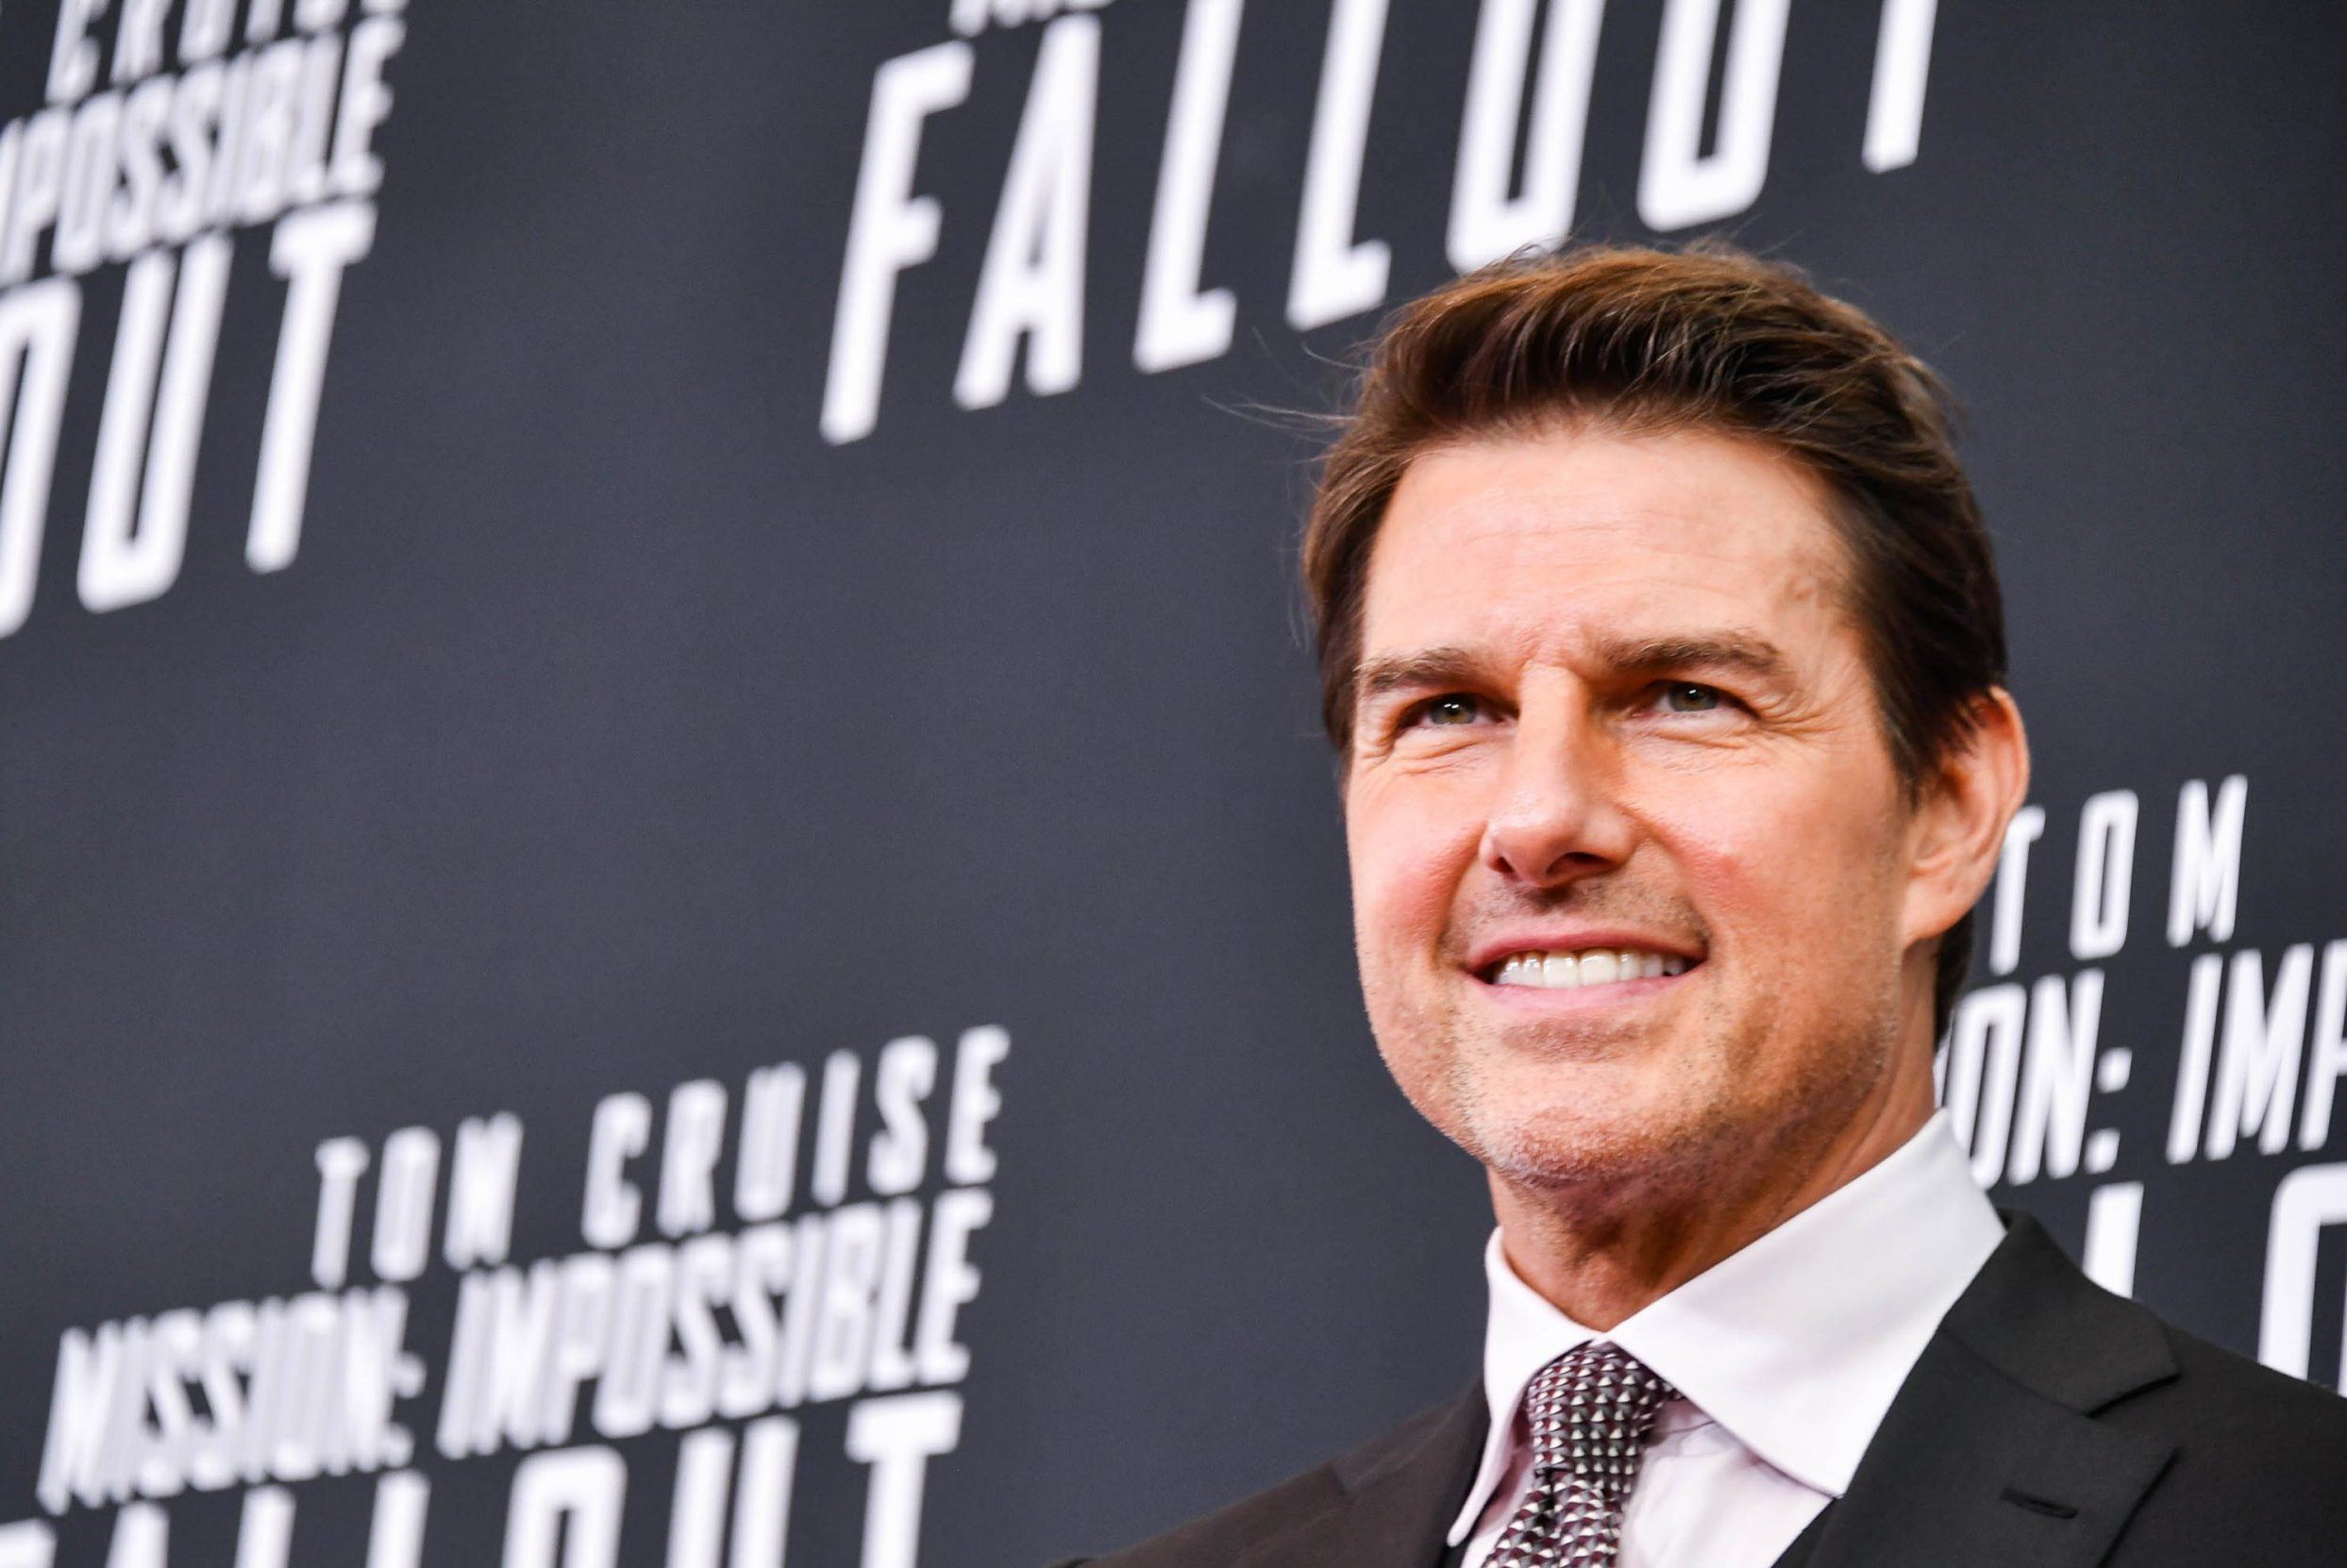 WASHINGTON, DC - JULY 22: Actor Tom Cruise attends the 'Mission: Impossible - Fallout' US Premiere at Lockheed Martin IMAX Theater at the Smithsonian National Air & Space Museum on July 22, 2018 in Washington, DC. (Photo by Michael Loccisano/Getty Images for Paramount Pictures)